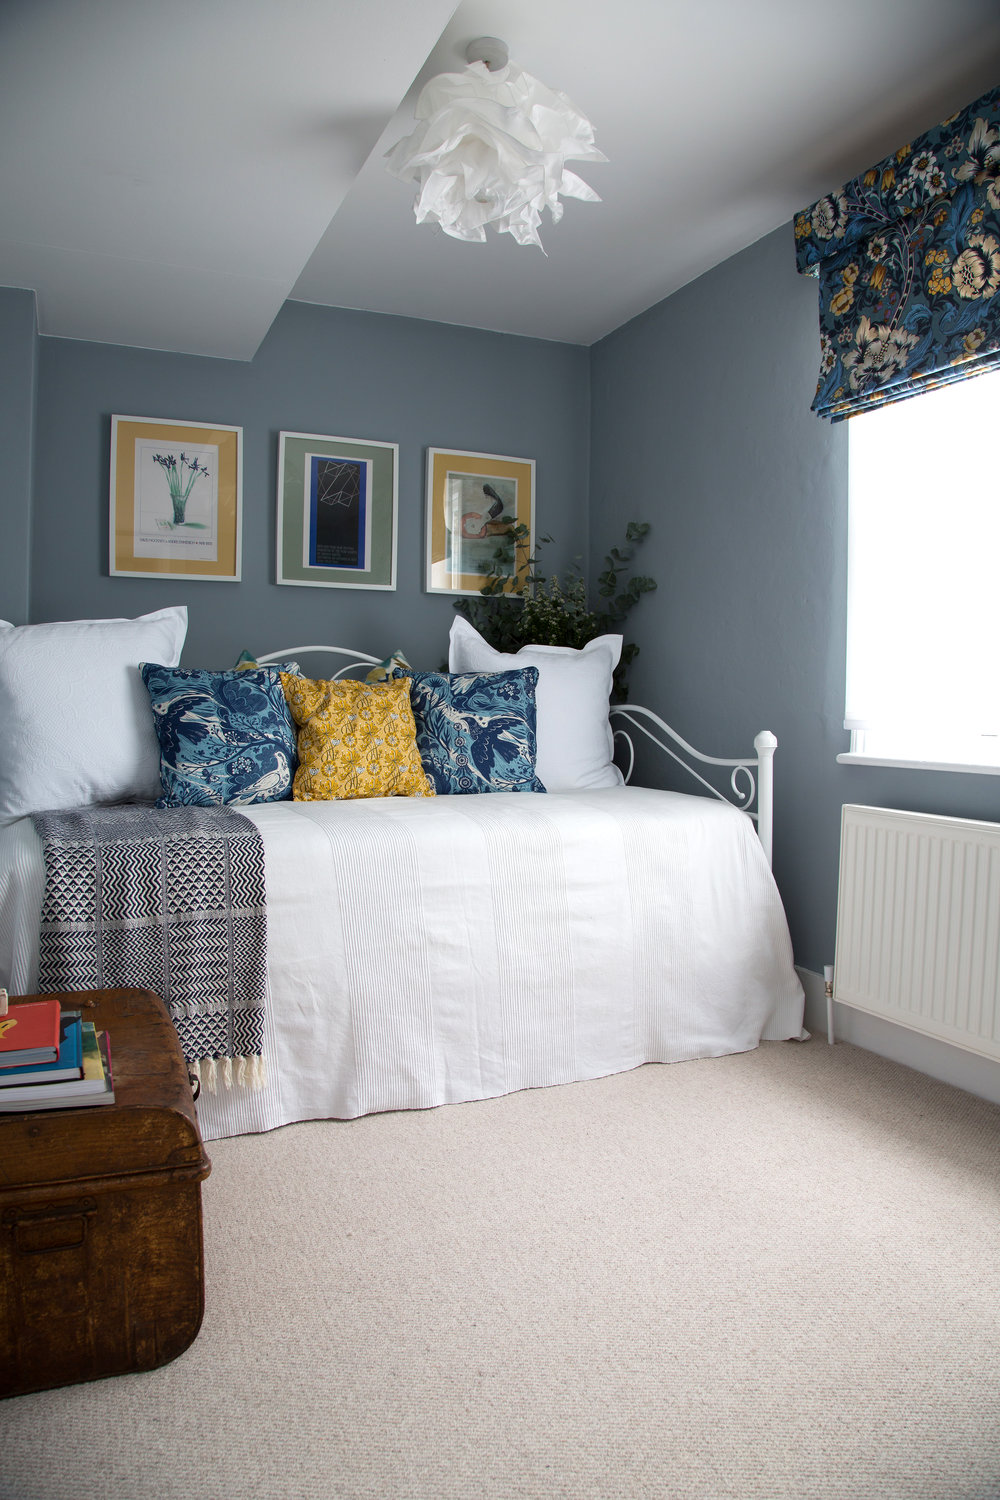 A Cosy Bright Bedroom in a Grade II listed home in Battle East Sussex – Interior Design by Smartstyle Interiors